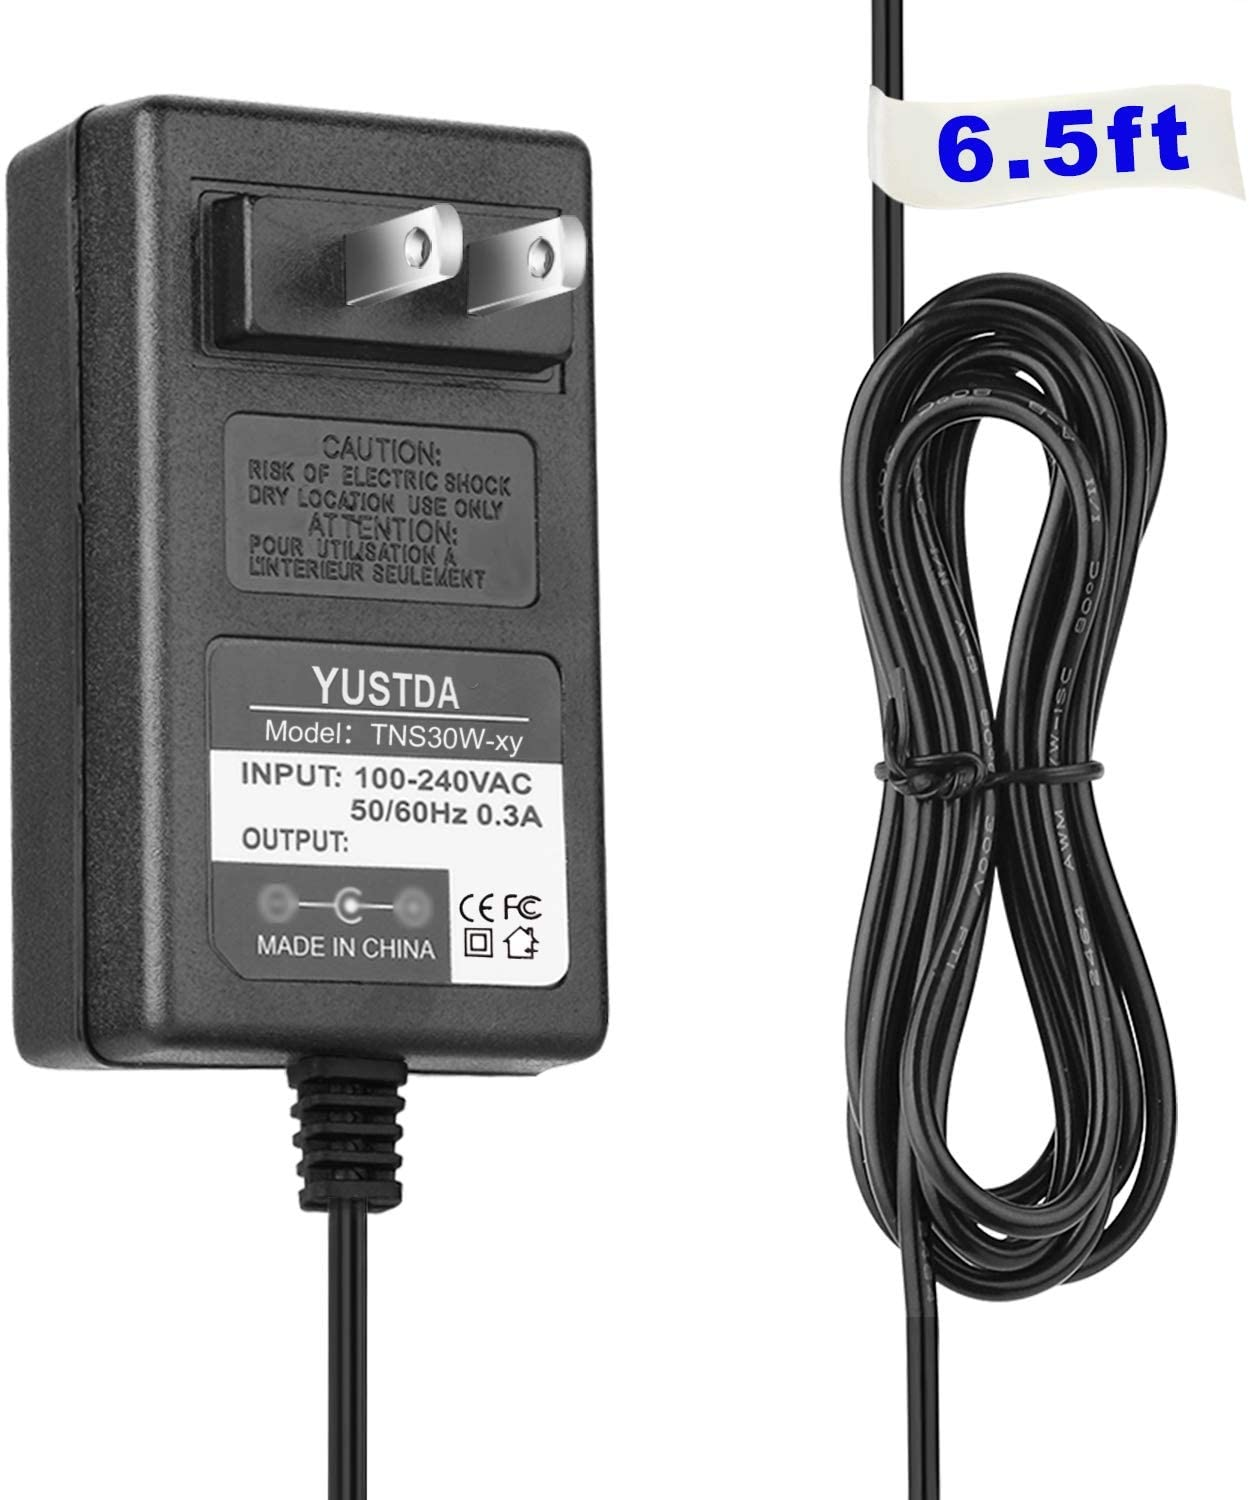 AC/DC Adapter for Optimus MD-1200 MD1200 Cat. No. 42-4041 MD-1600 MD1600 Cat. No. 42-4043 MD-1210 Cat. No. 42-4045 420-4045 MD1210 RadioShack Radio Shack Electronic Keyboard Charger